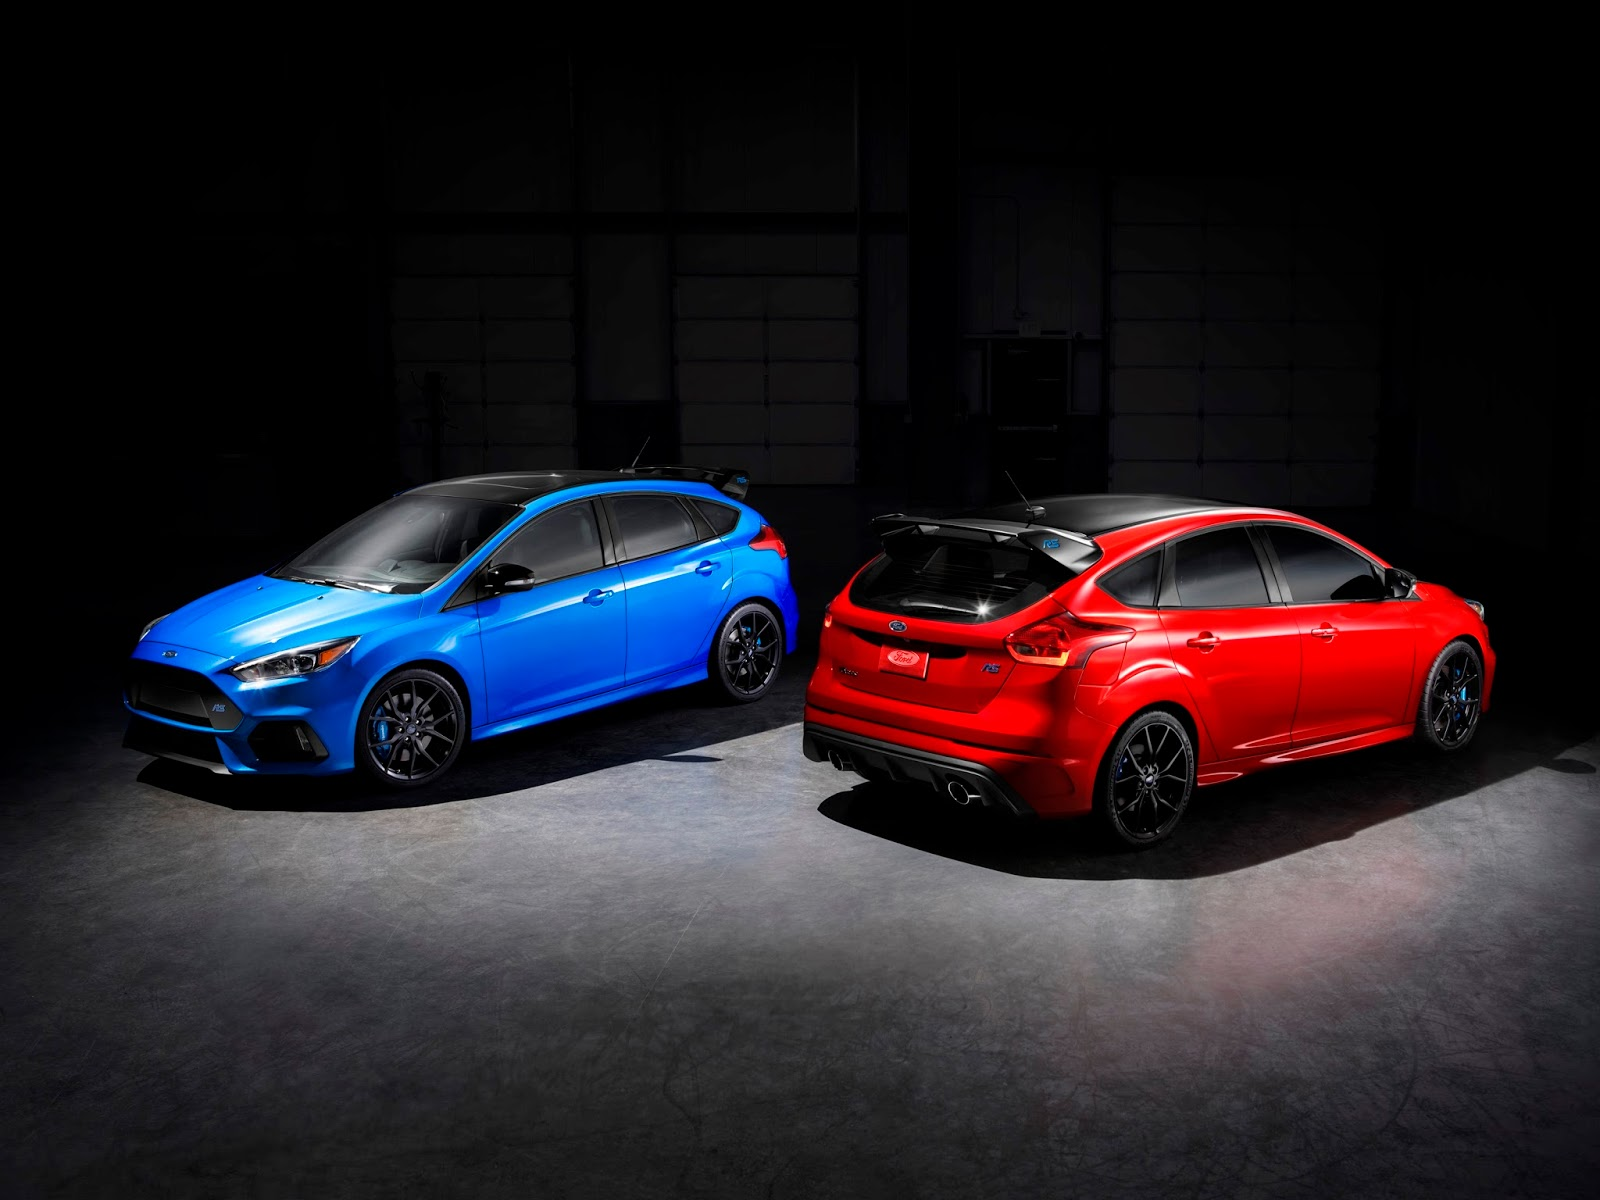 North America Image 1 Ford Focus RS Option Pack Edition : Το τέλειο βελτιώθηκε! Ford, Ford Focus, Ford Focus RS, Ford Focus RS Option Pack Edition, Ford Performance, Limited edition, videos